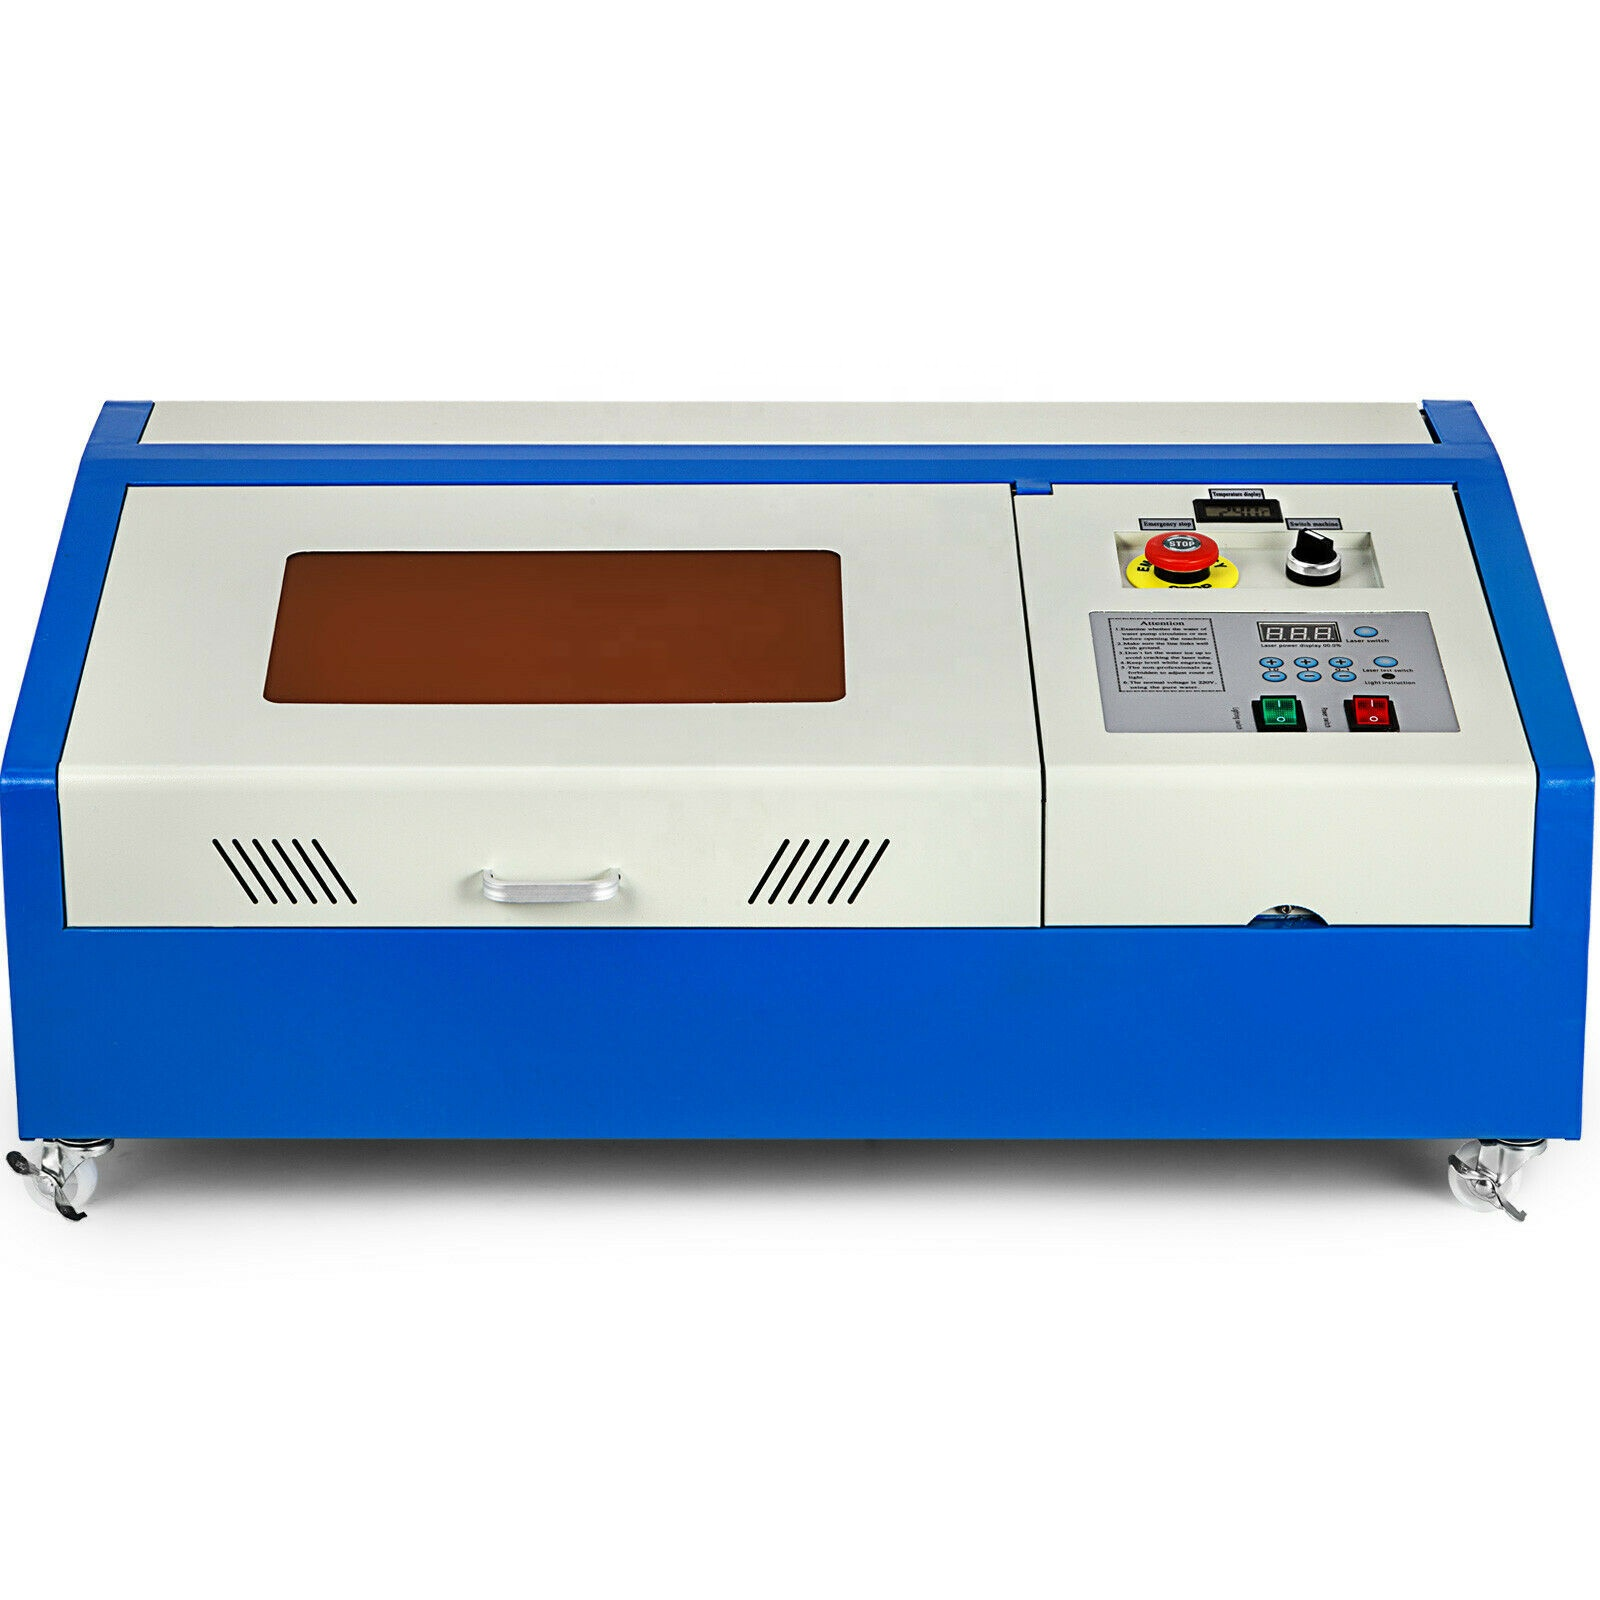 China New <strong>Laser</strong> Engraving and Marking Machine With a Precision 40W Water Cooled CO2 <strong>Laser</strong> With Low Price